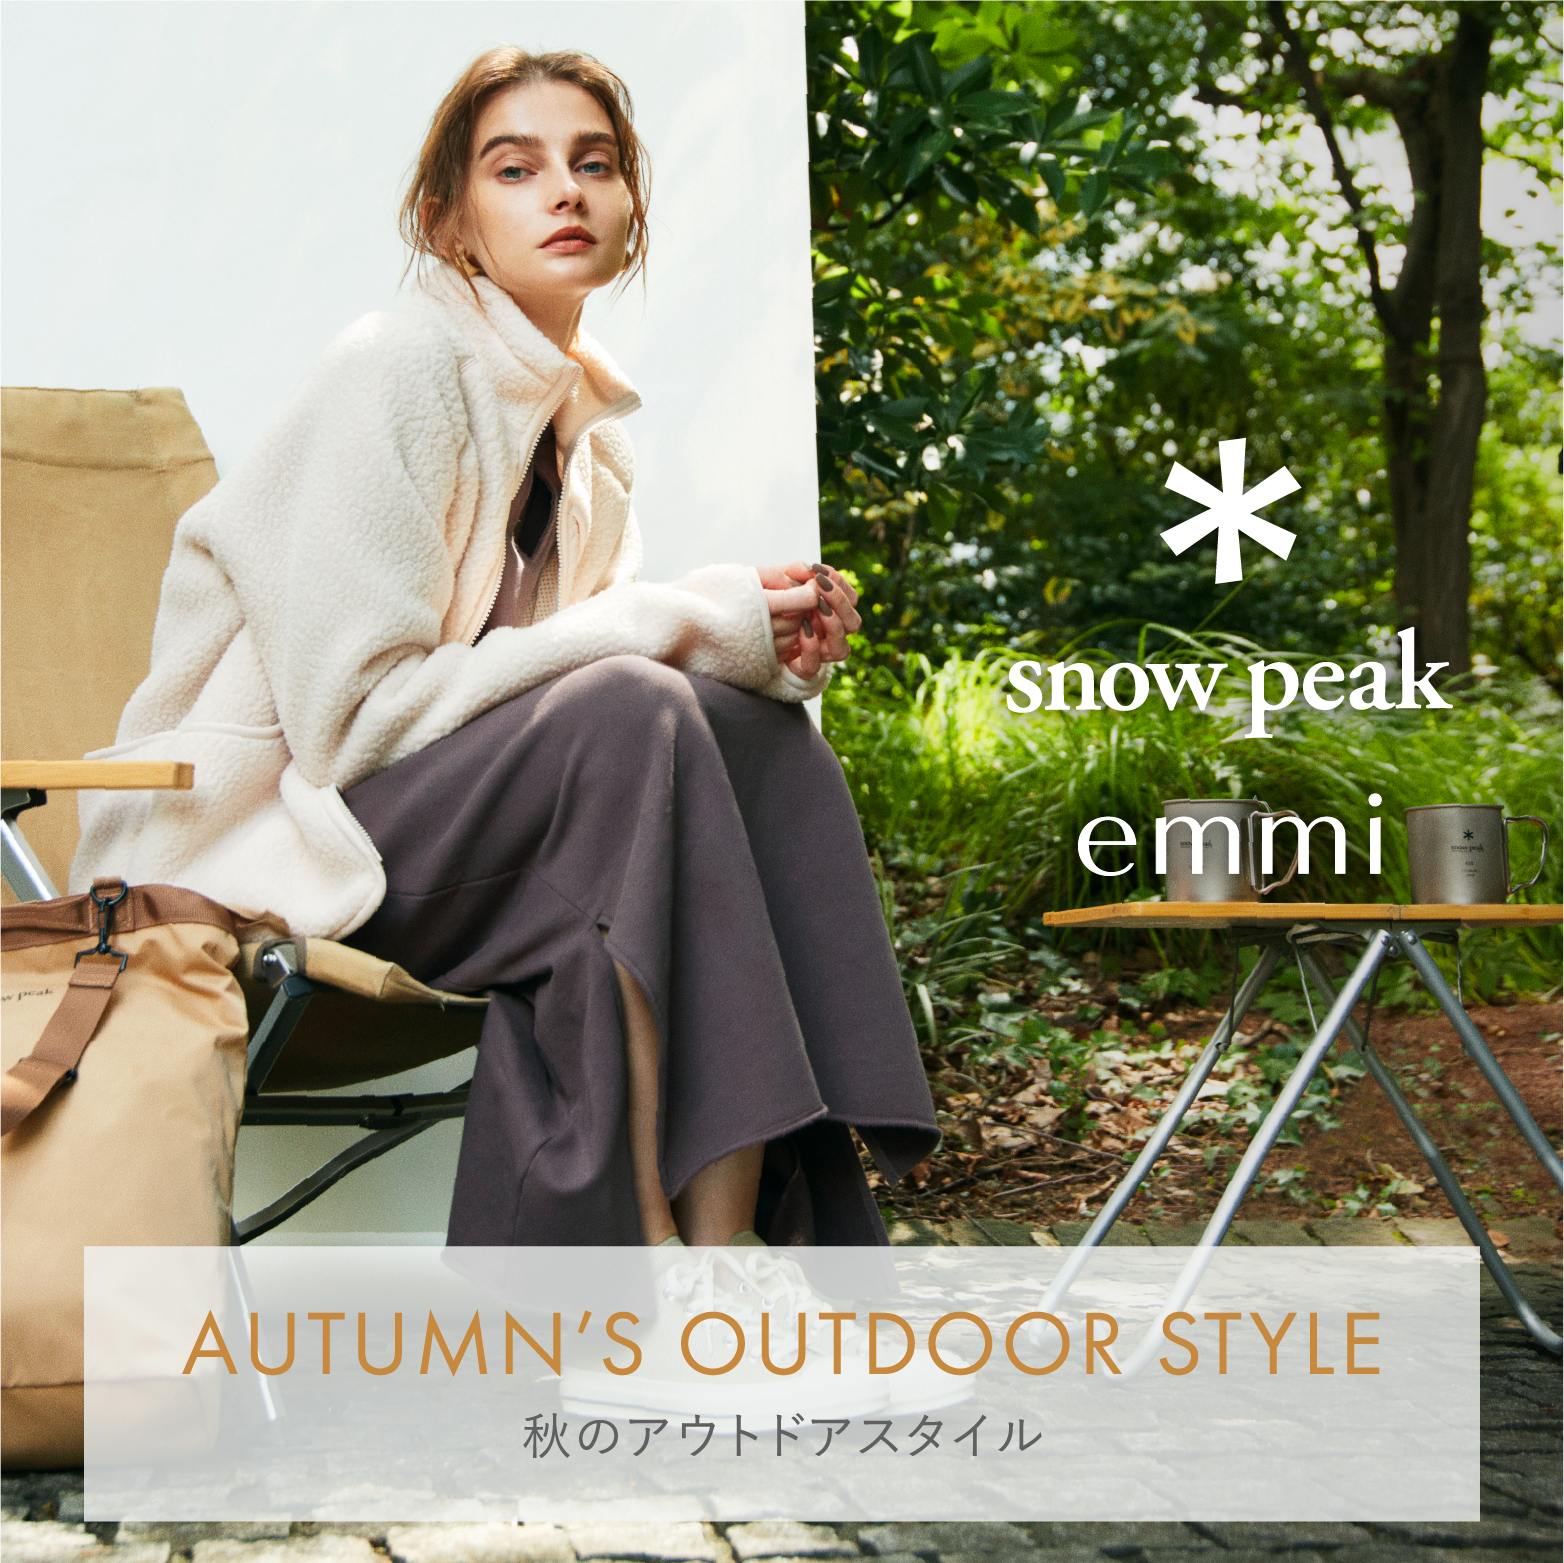 snow peak emmi AUTUMN'S OUTDOOR STYLE 秋のアウトドアスタイル